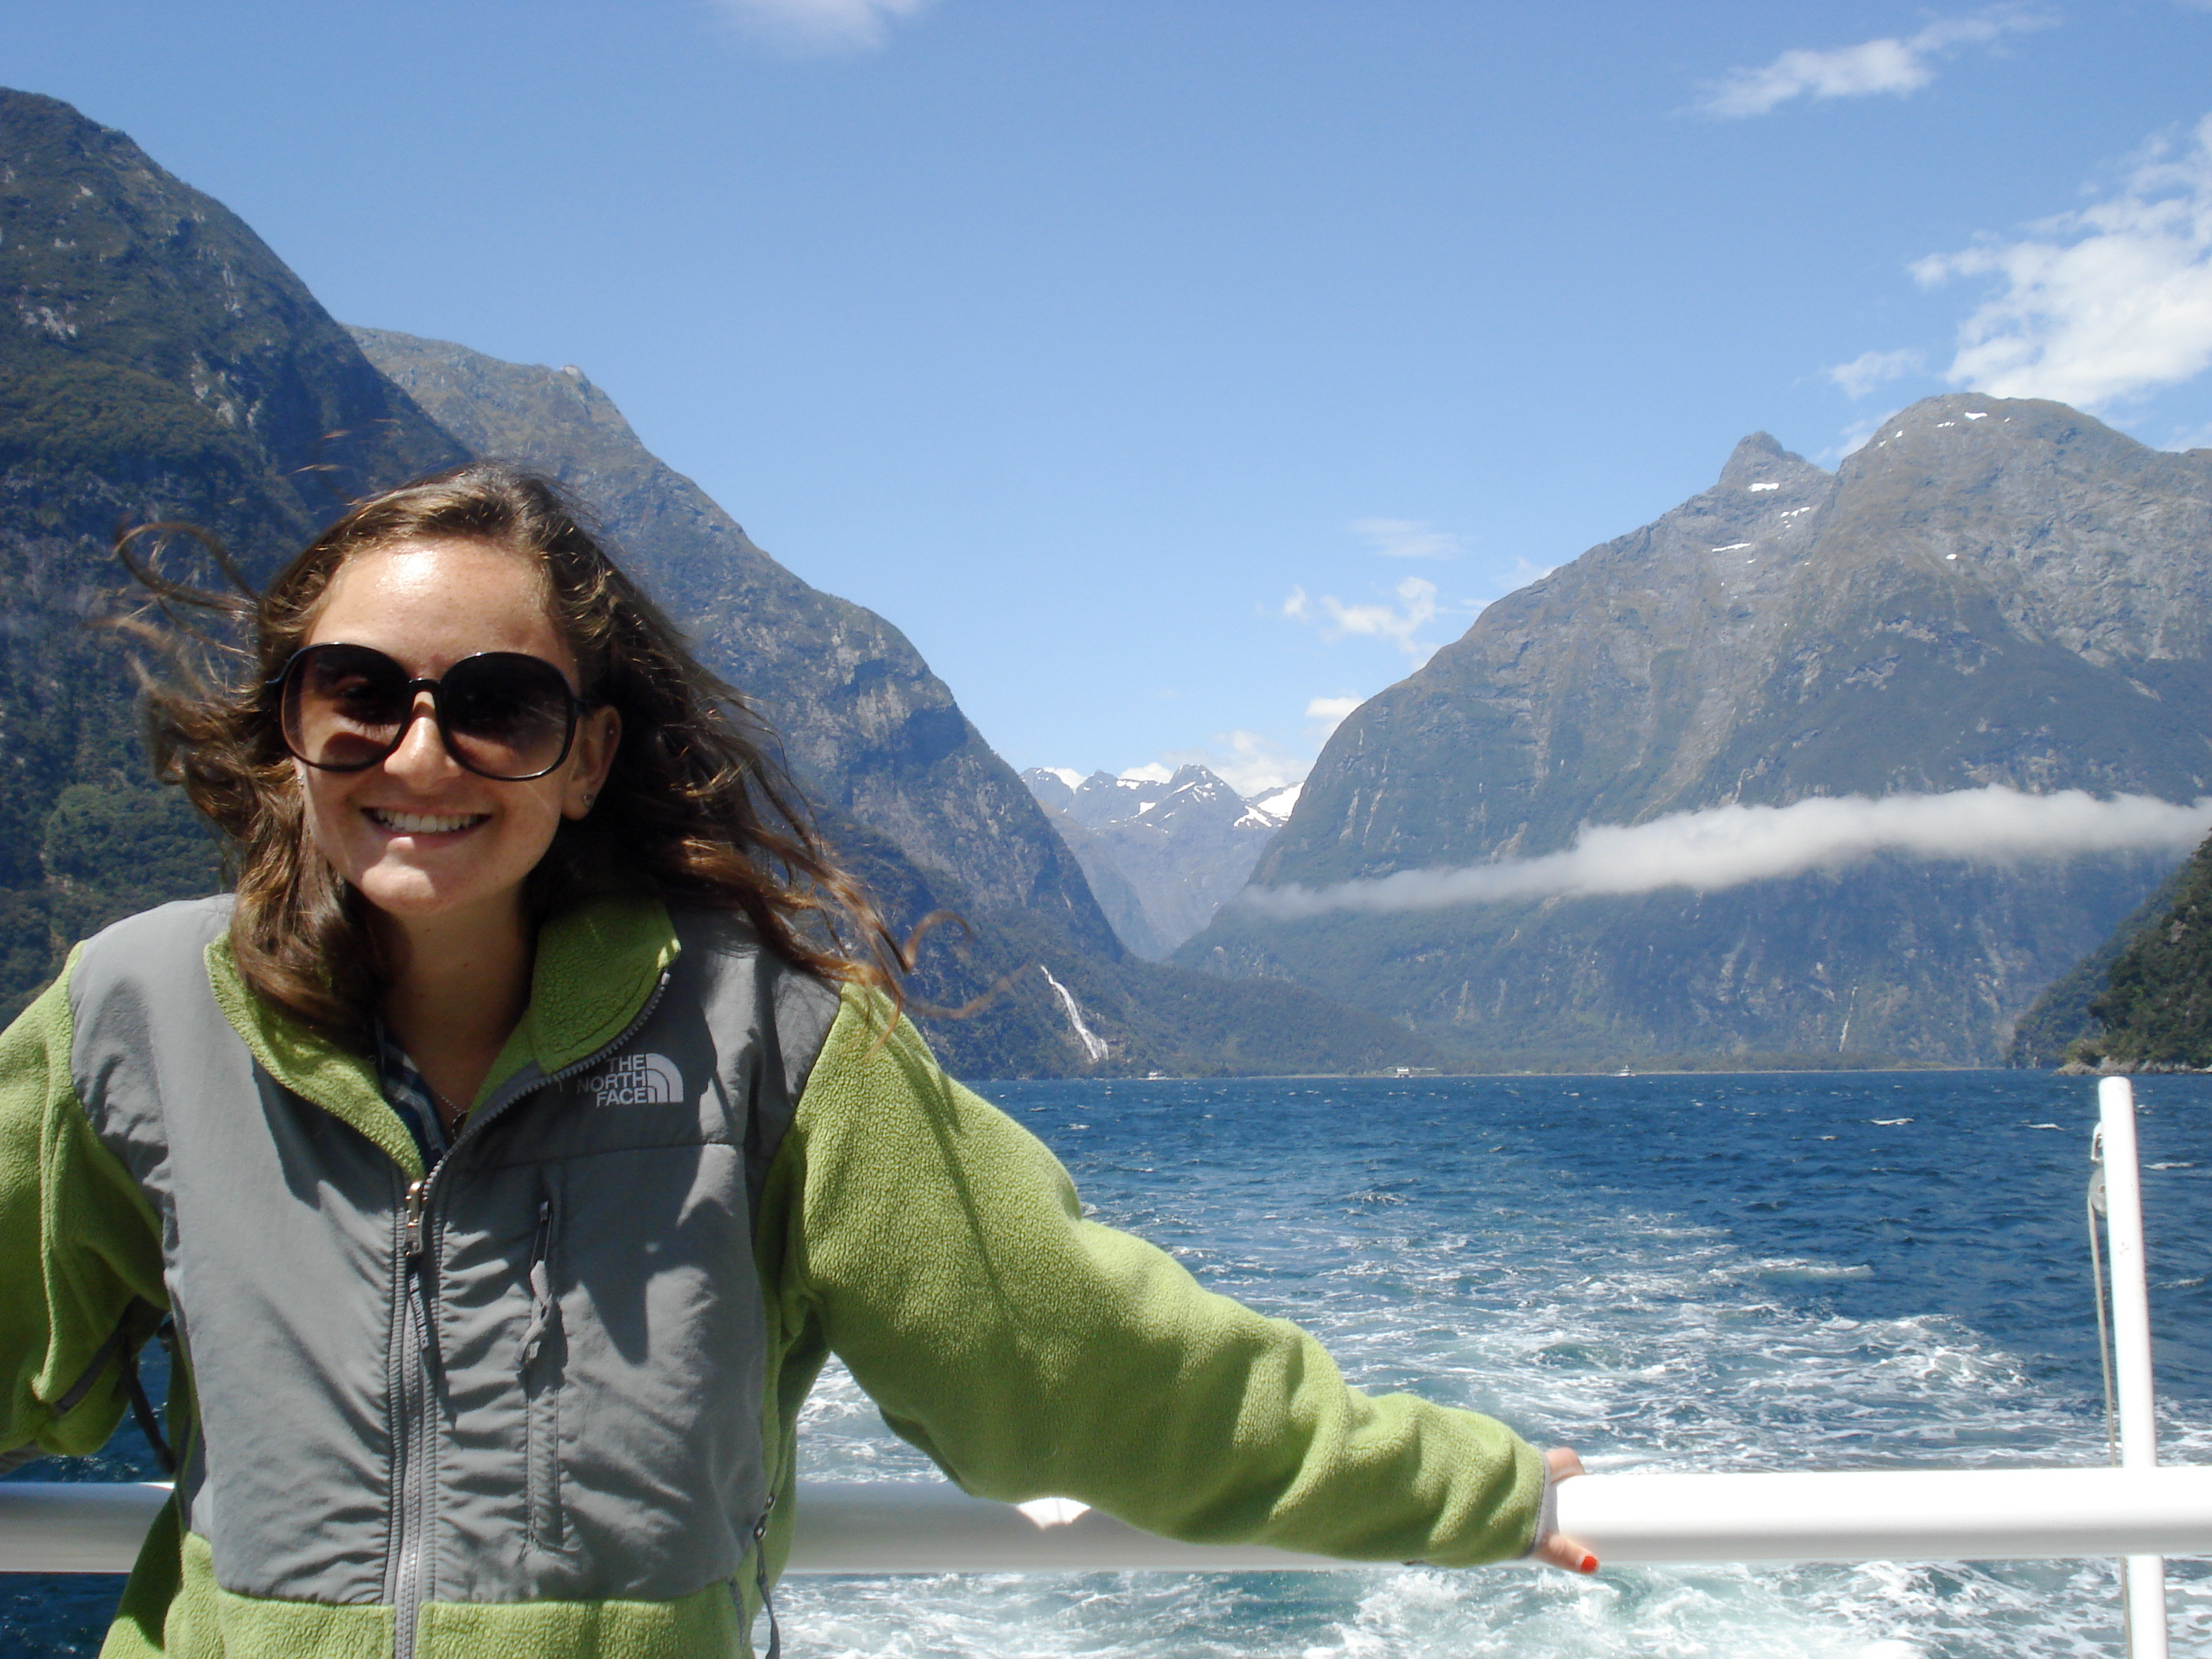 In Milford Sound in New Zealand